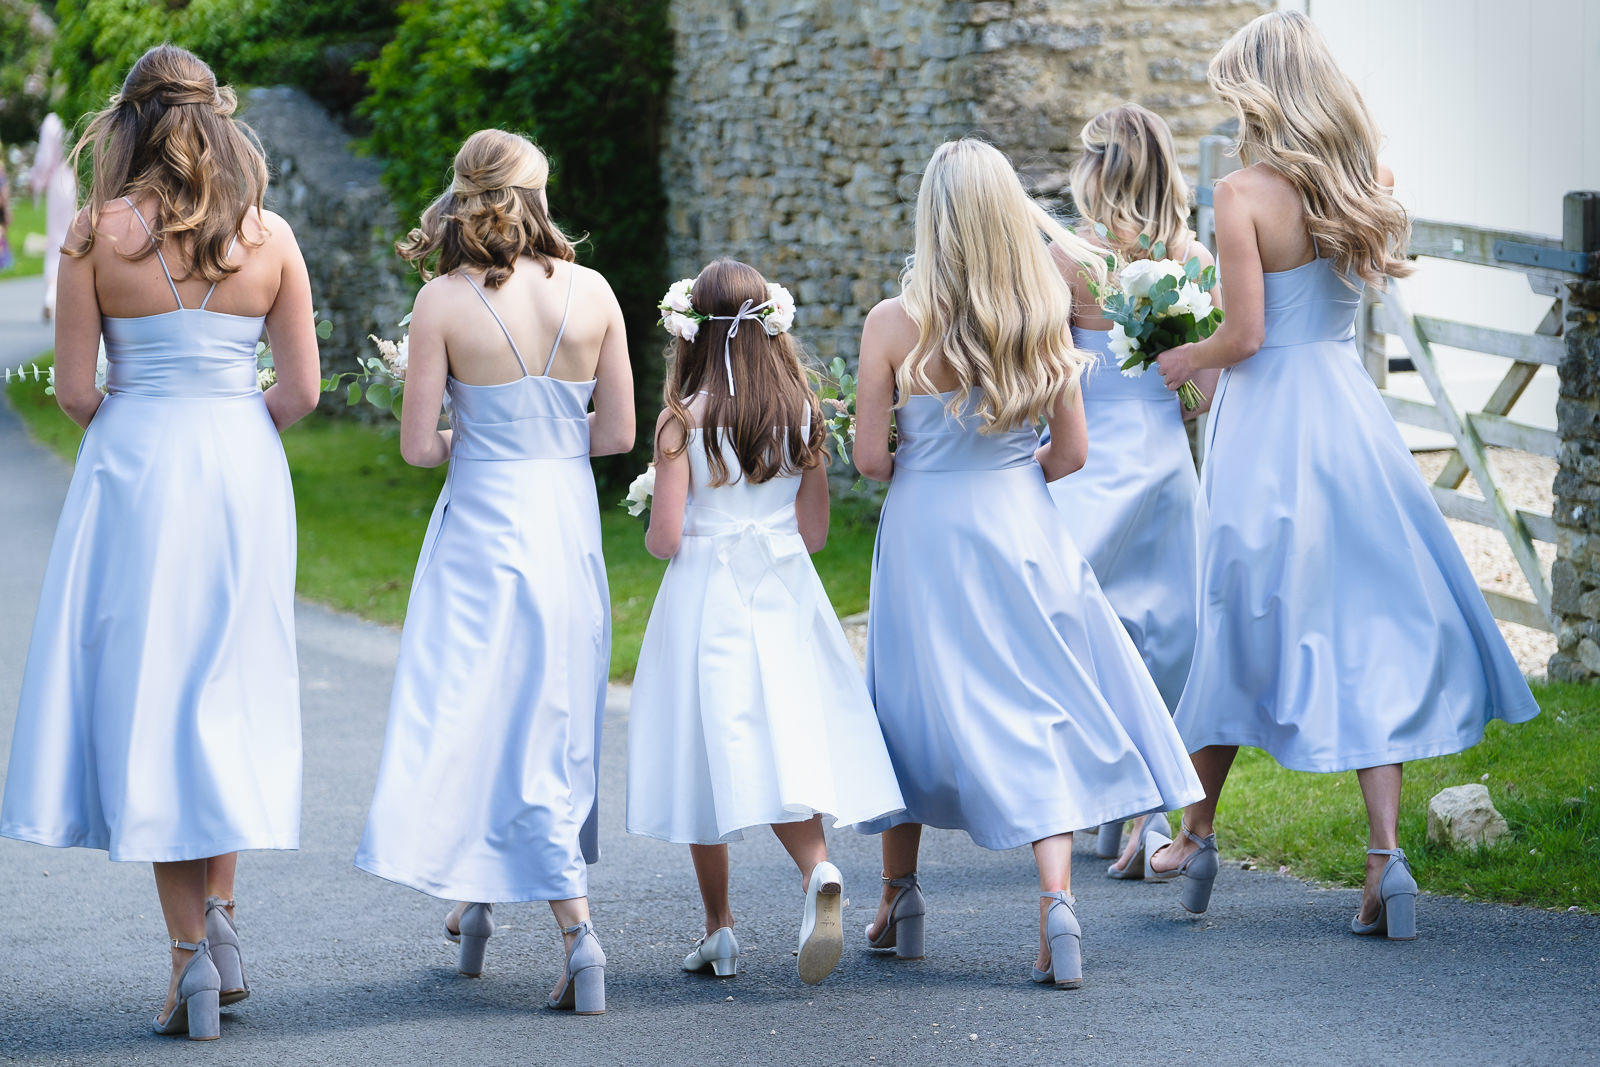 Wedding photography with bridesmaids wearing blue silk dresses walking to the church